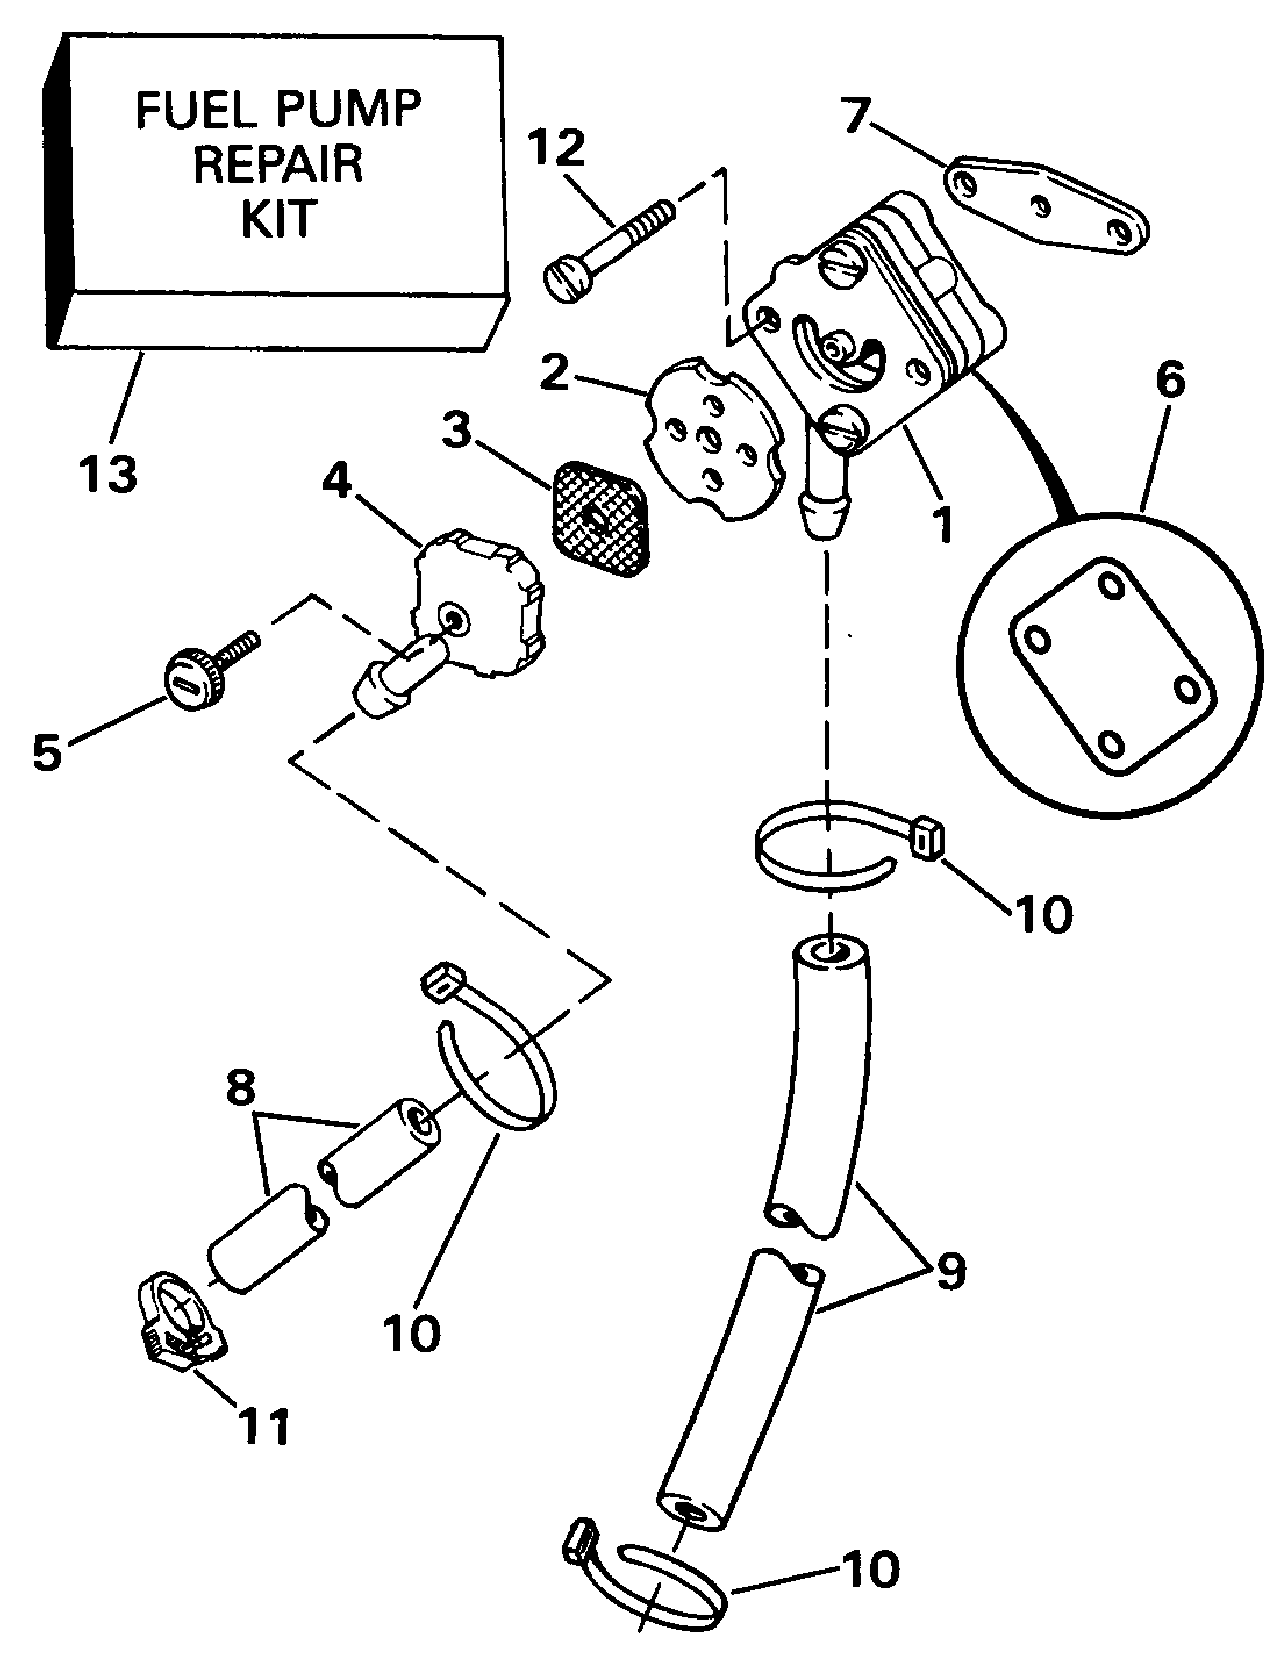 Johnson 15 Fuel Pump Diagram Wiring Schematics 1988 9 Hp Outboard Parts Brp Evinrude En 1990 E15resr Rope Diaphragm